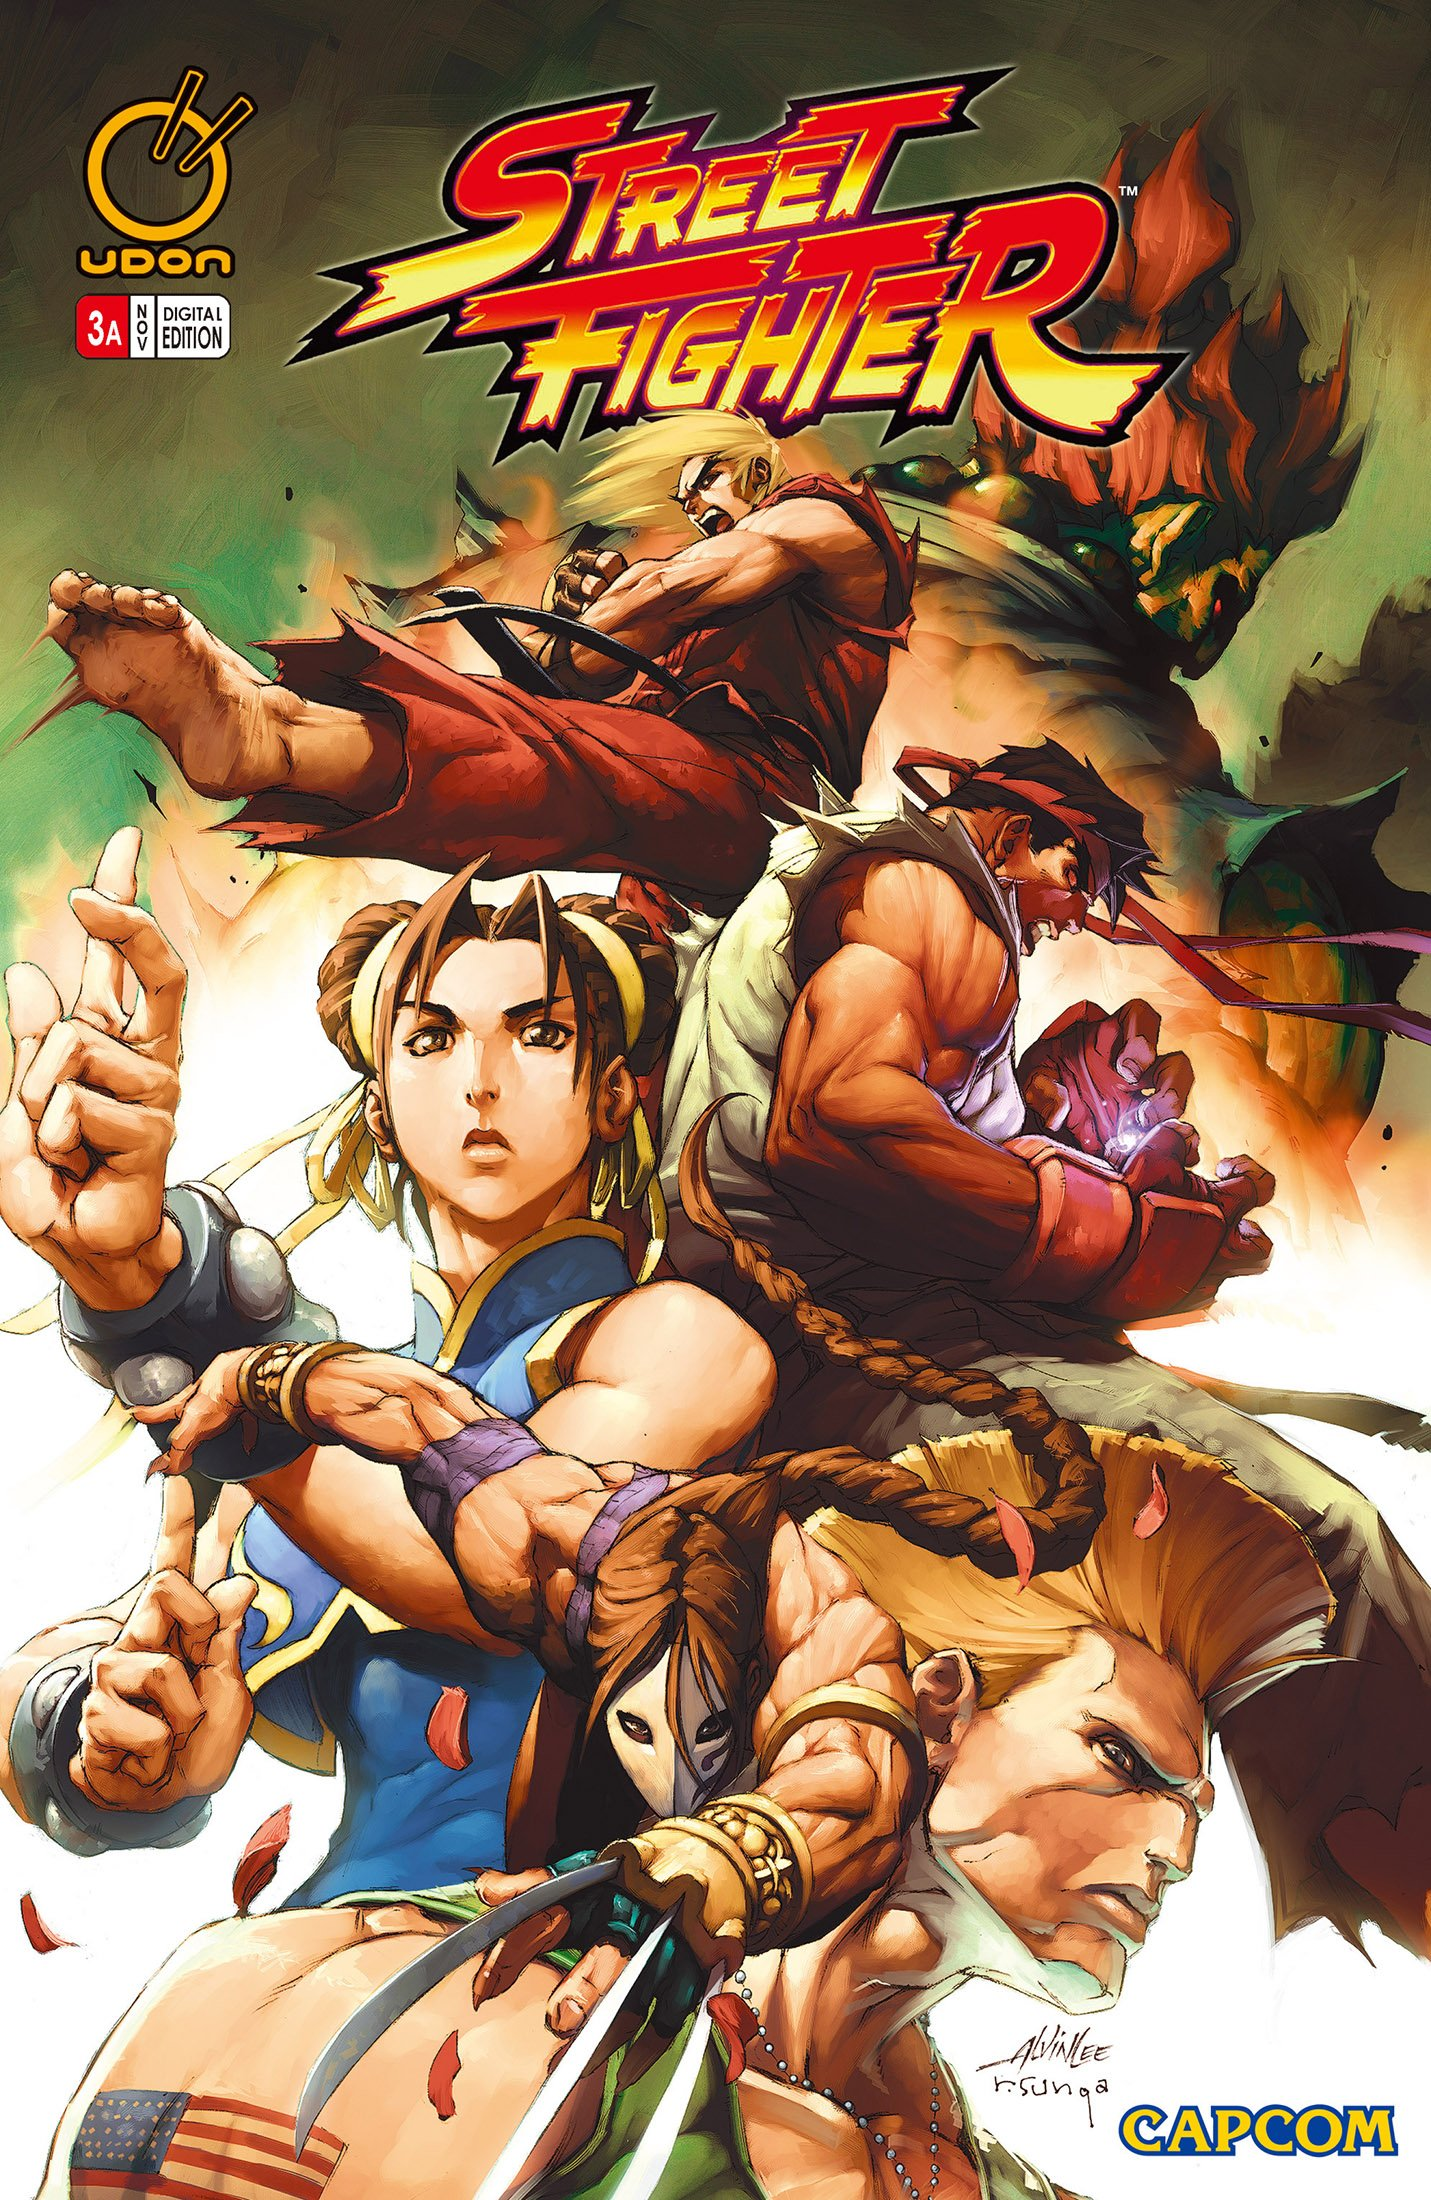 Street Fighter Vol.1 003 (November 2003) (cover a)